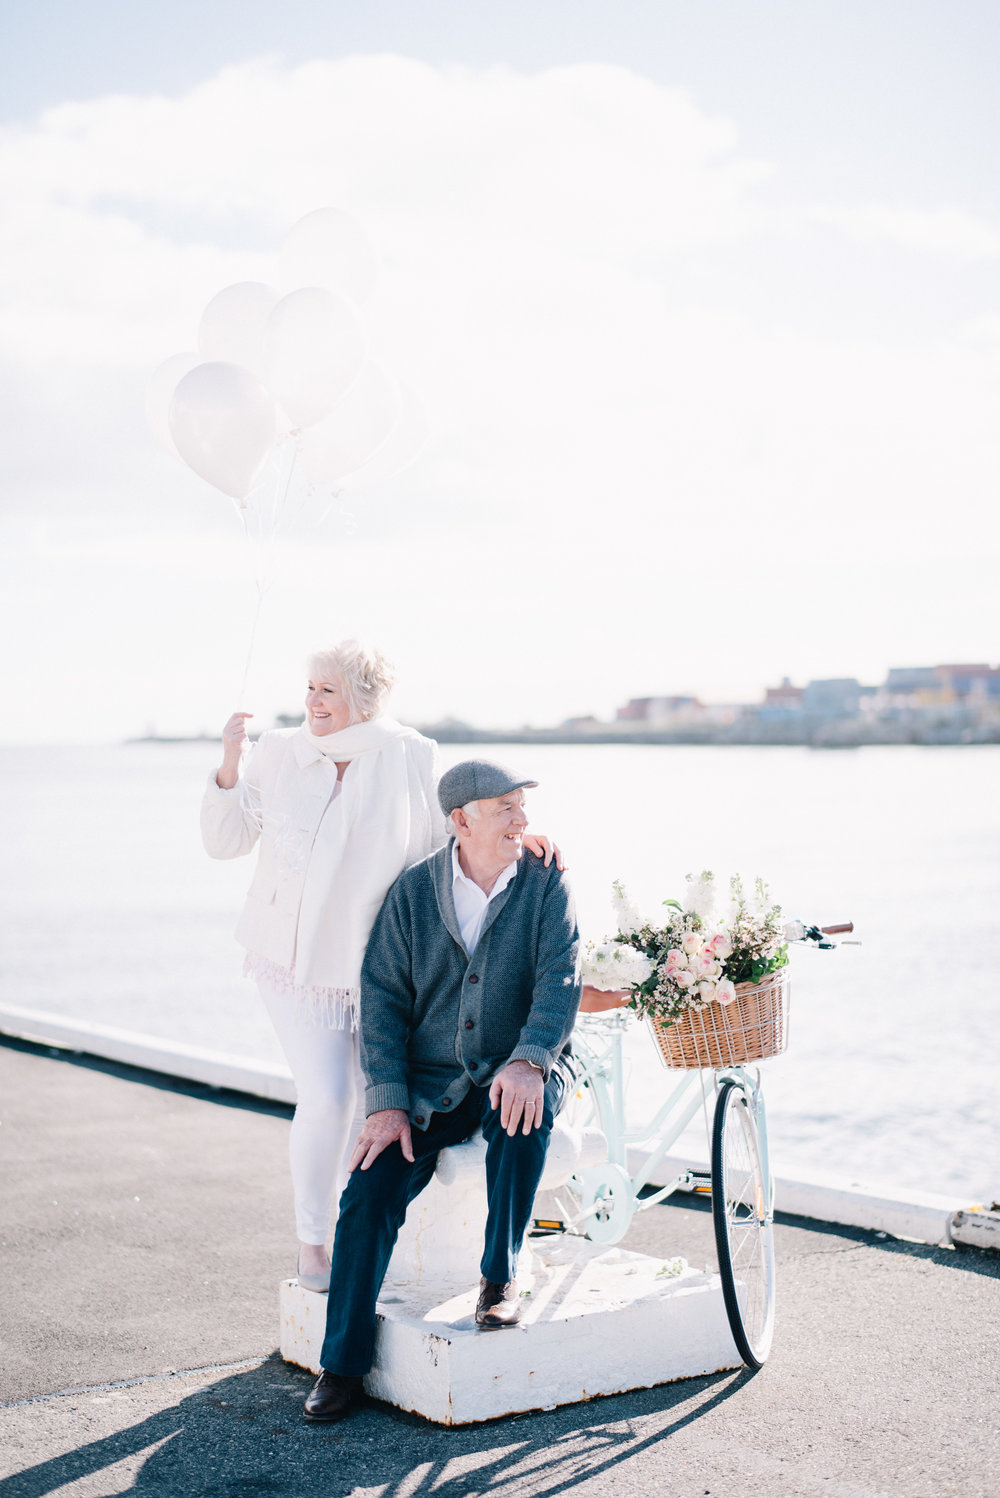 Ben Yew Photography of Elderly Couple in Love